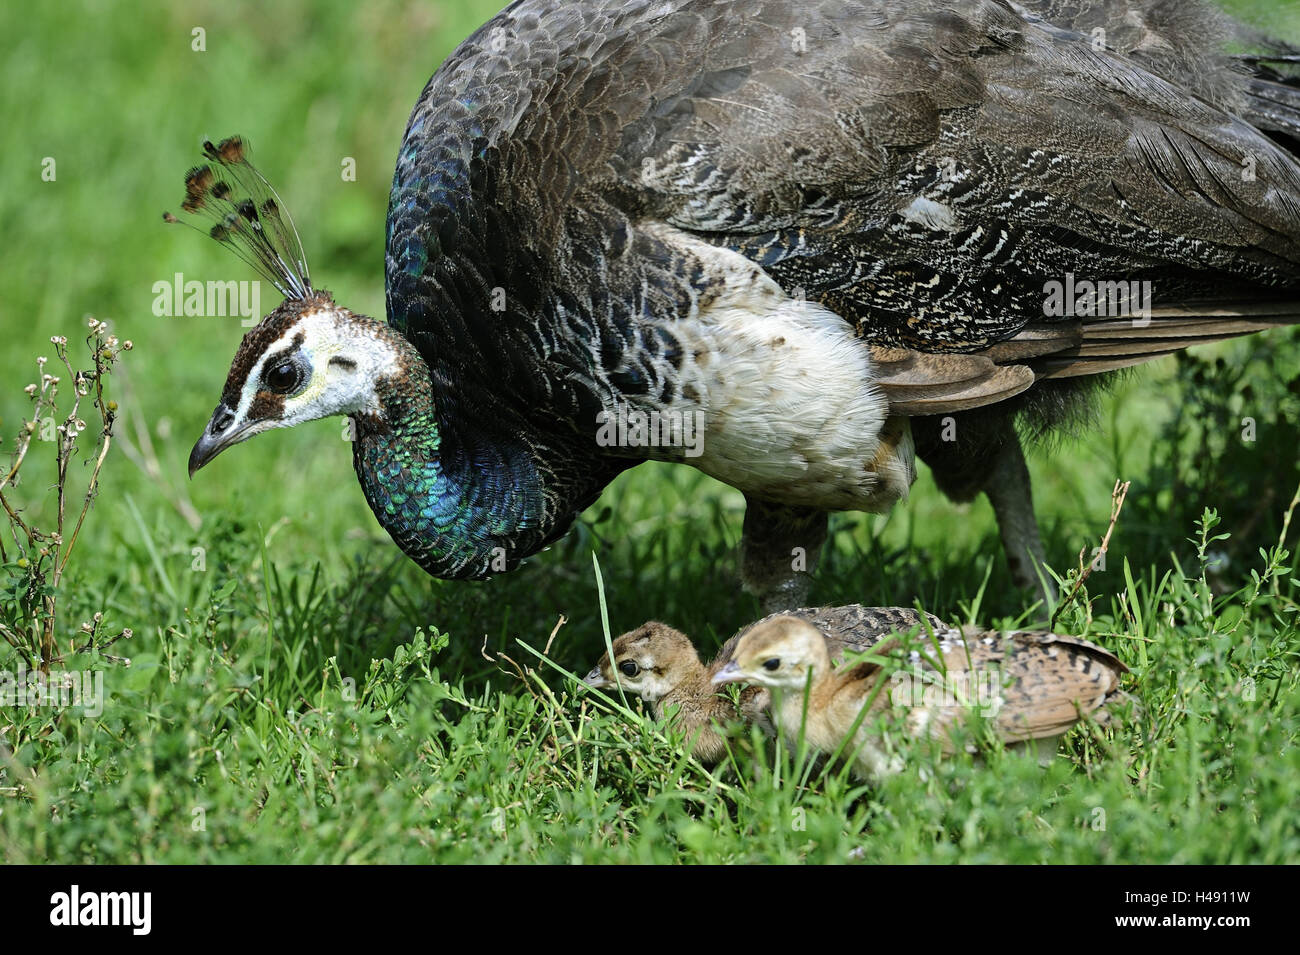 Peacock, Pavo cristatus, mother animal, chick, eat, side view, meadow, Germany, habitat, gallinaceous birds, animals, - Stock Image